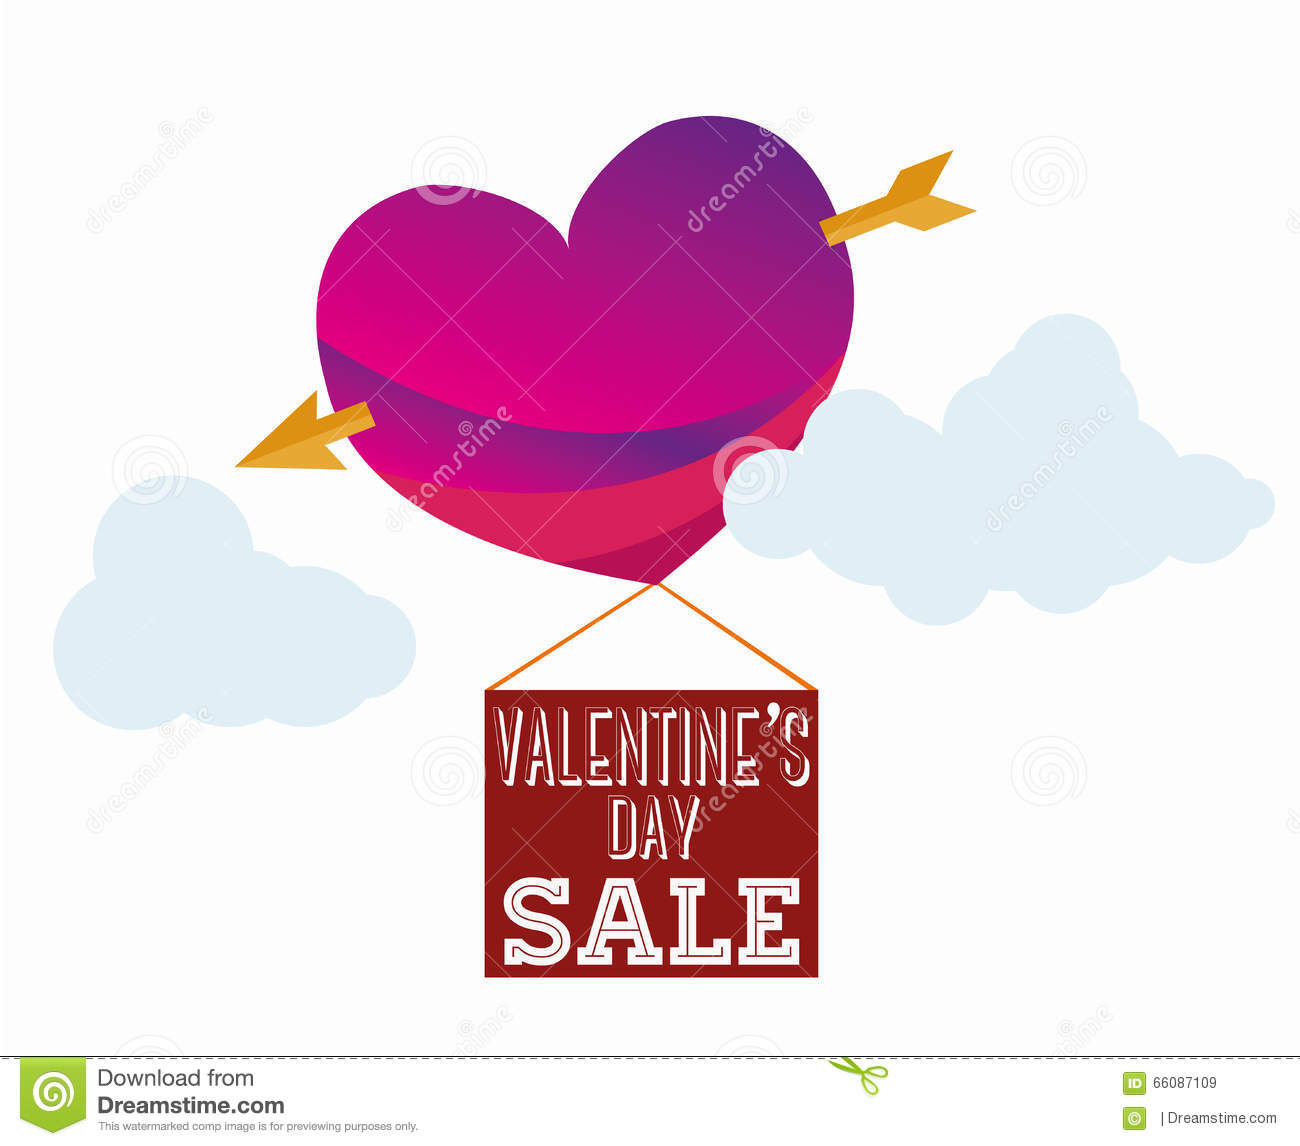 Valentines Sale Stock Vector